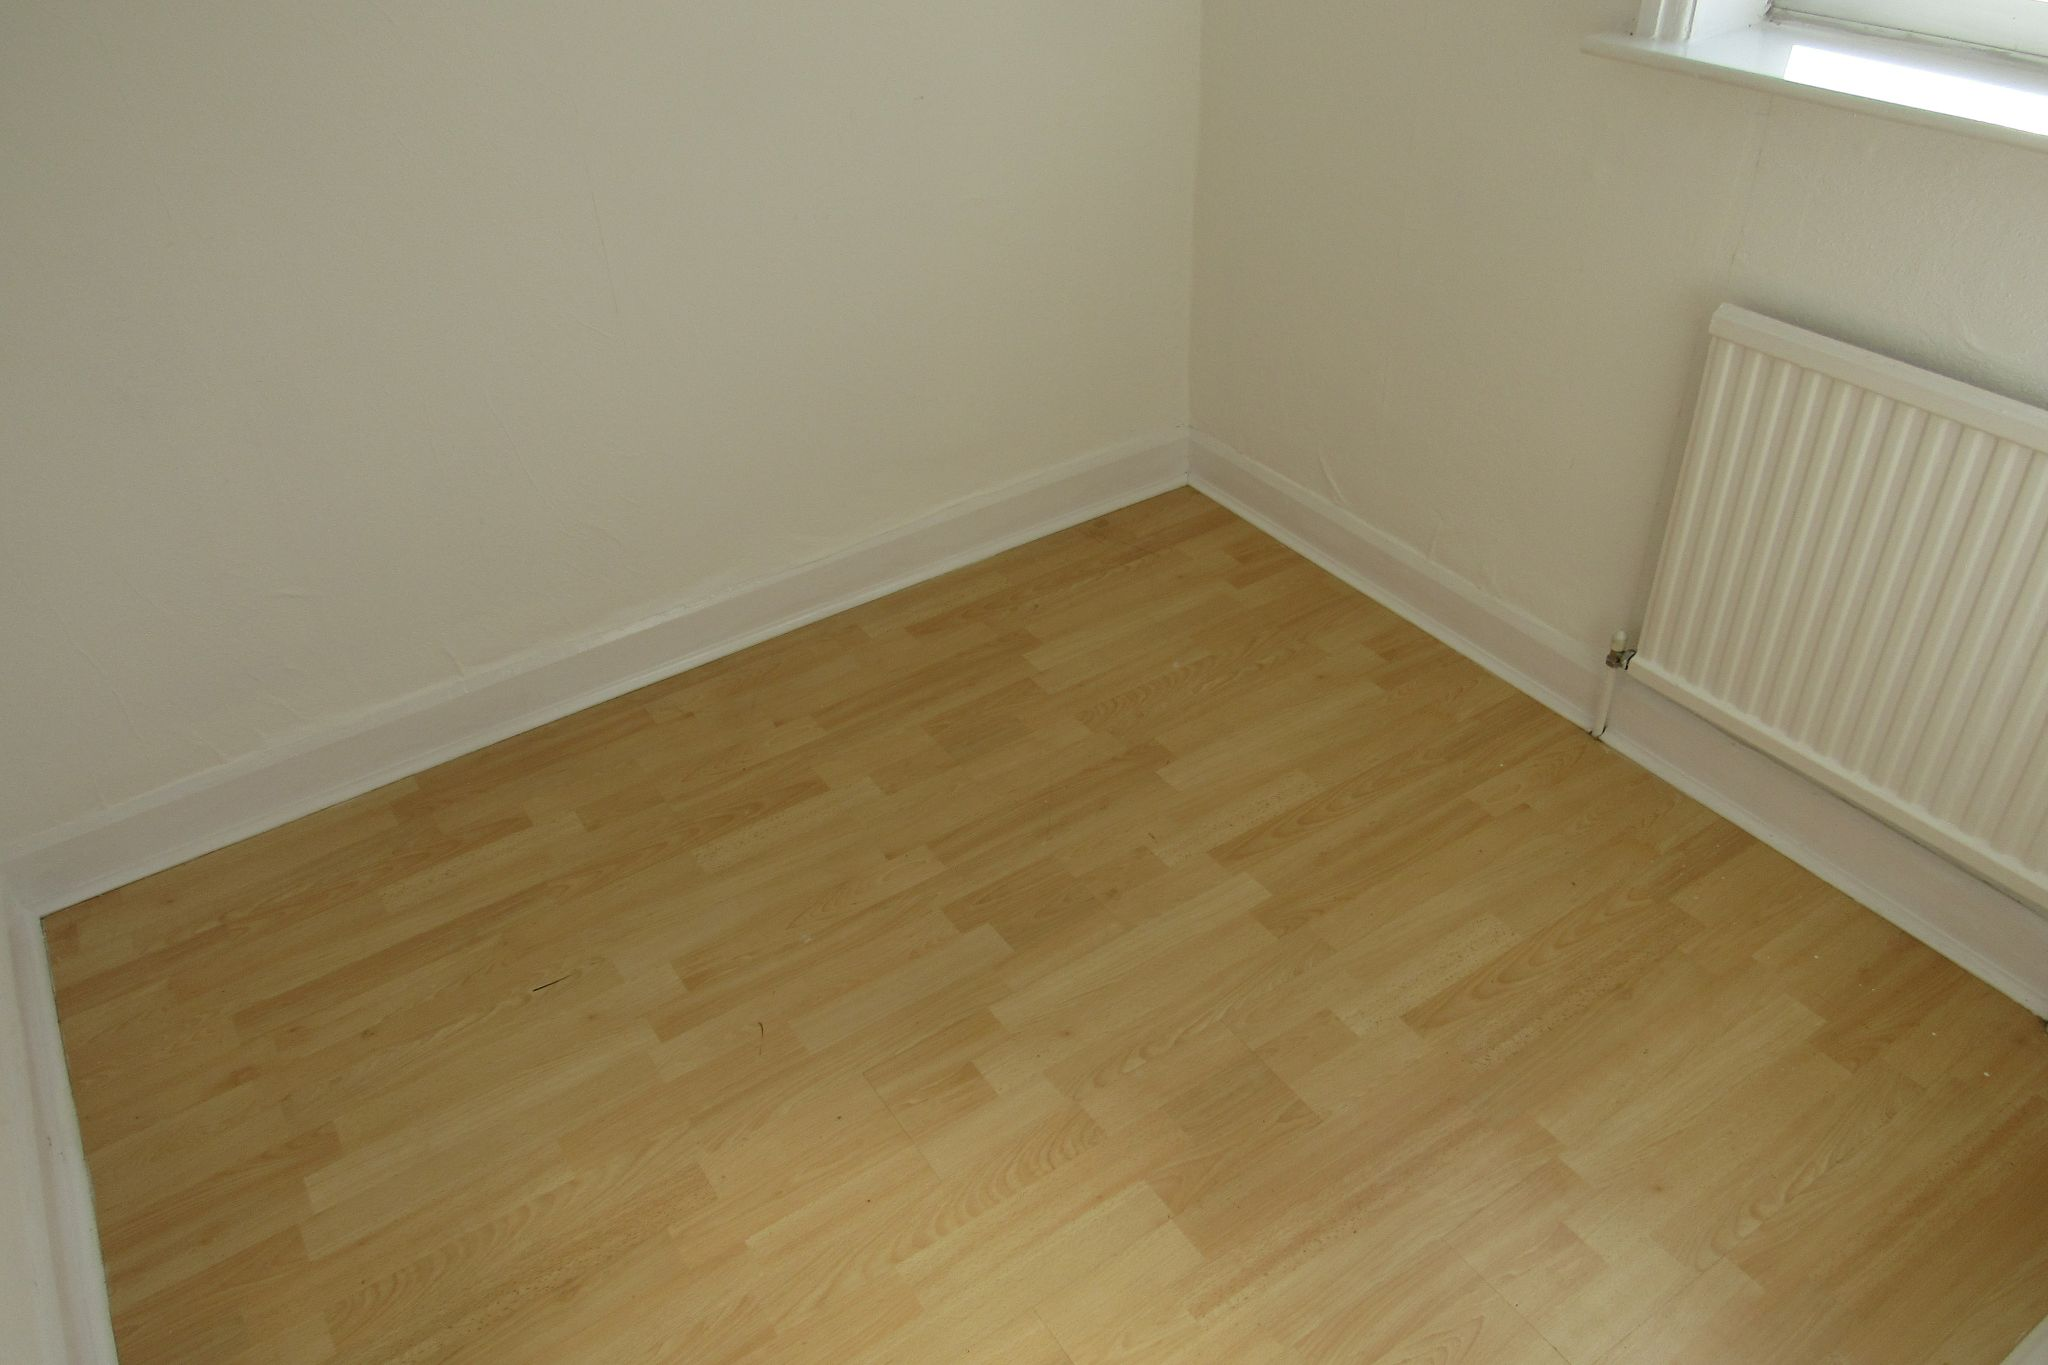 3 bedroom end terraced house SSTC in Manchester - Photograph 21.